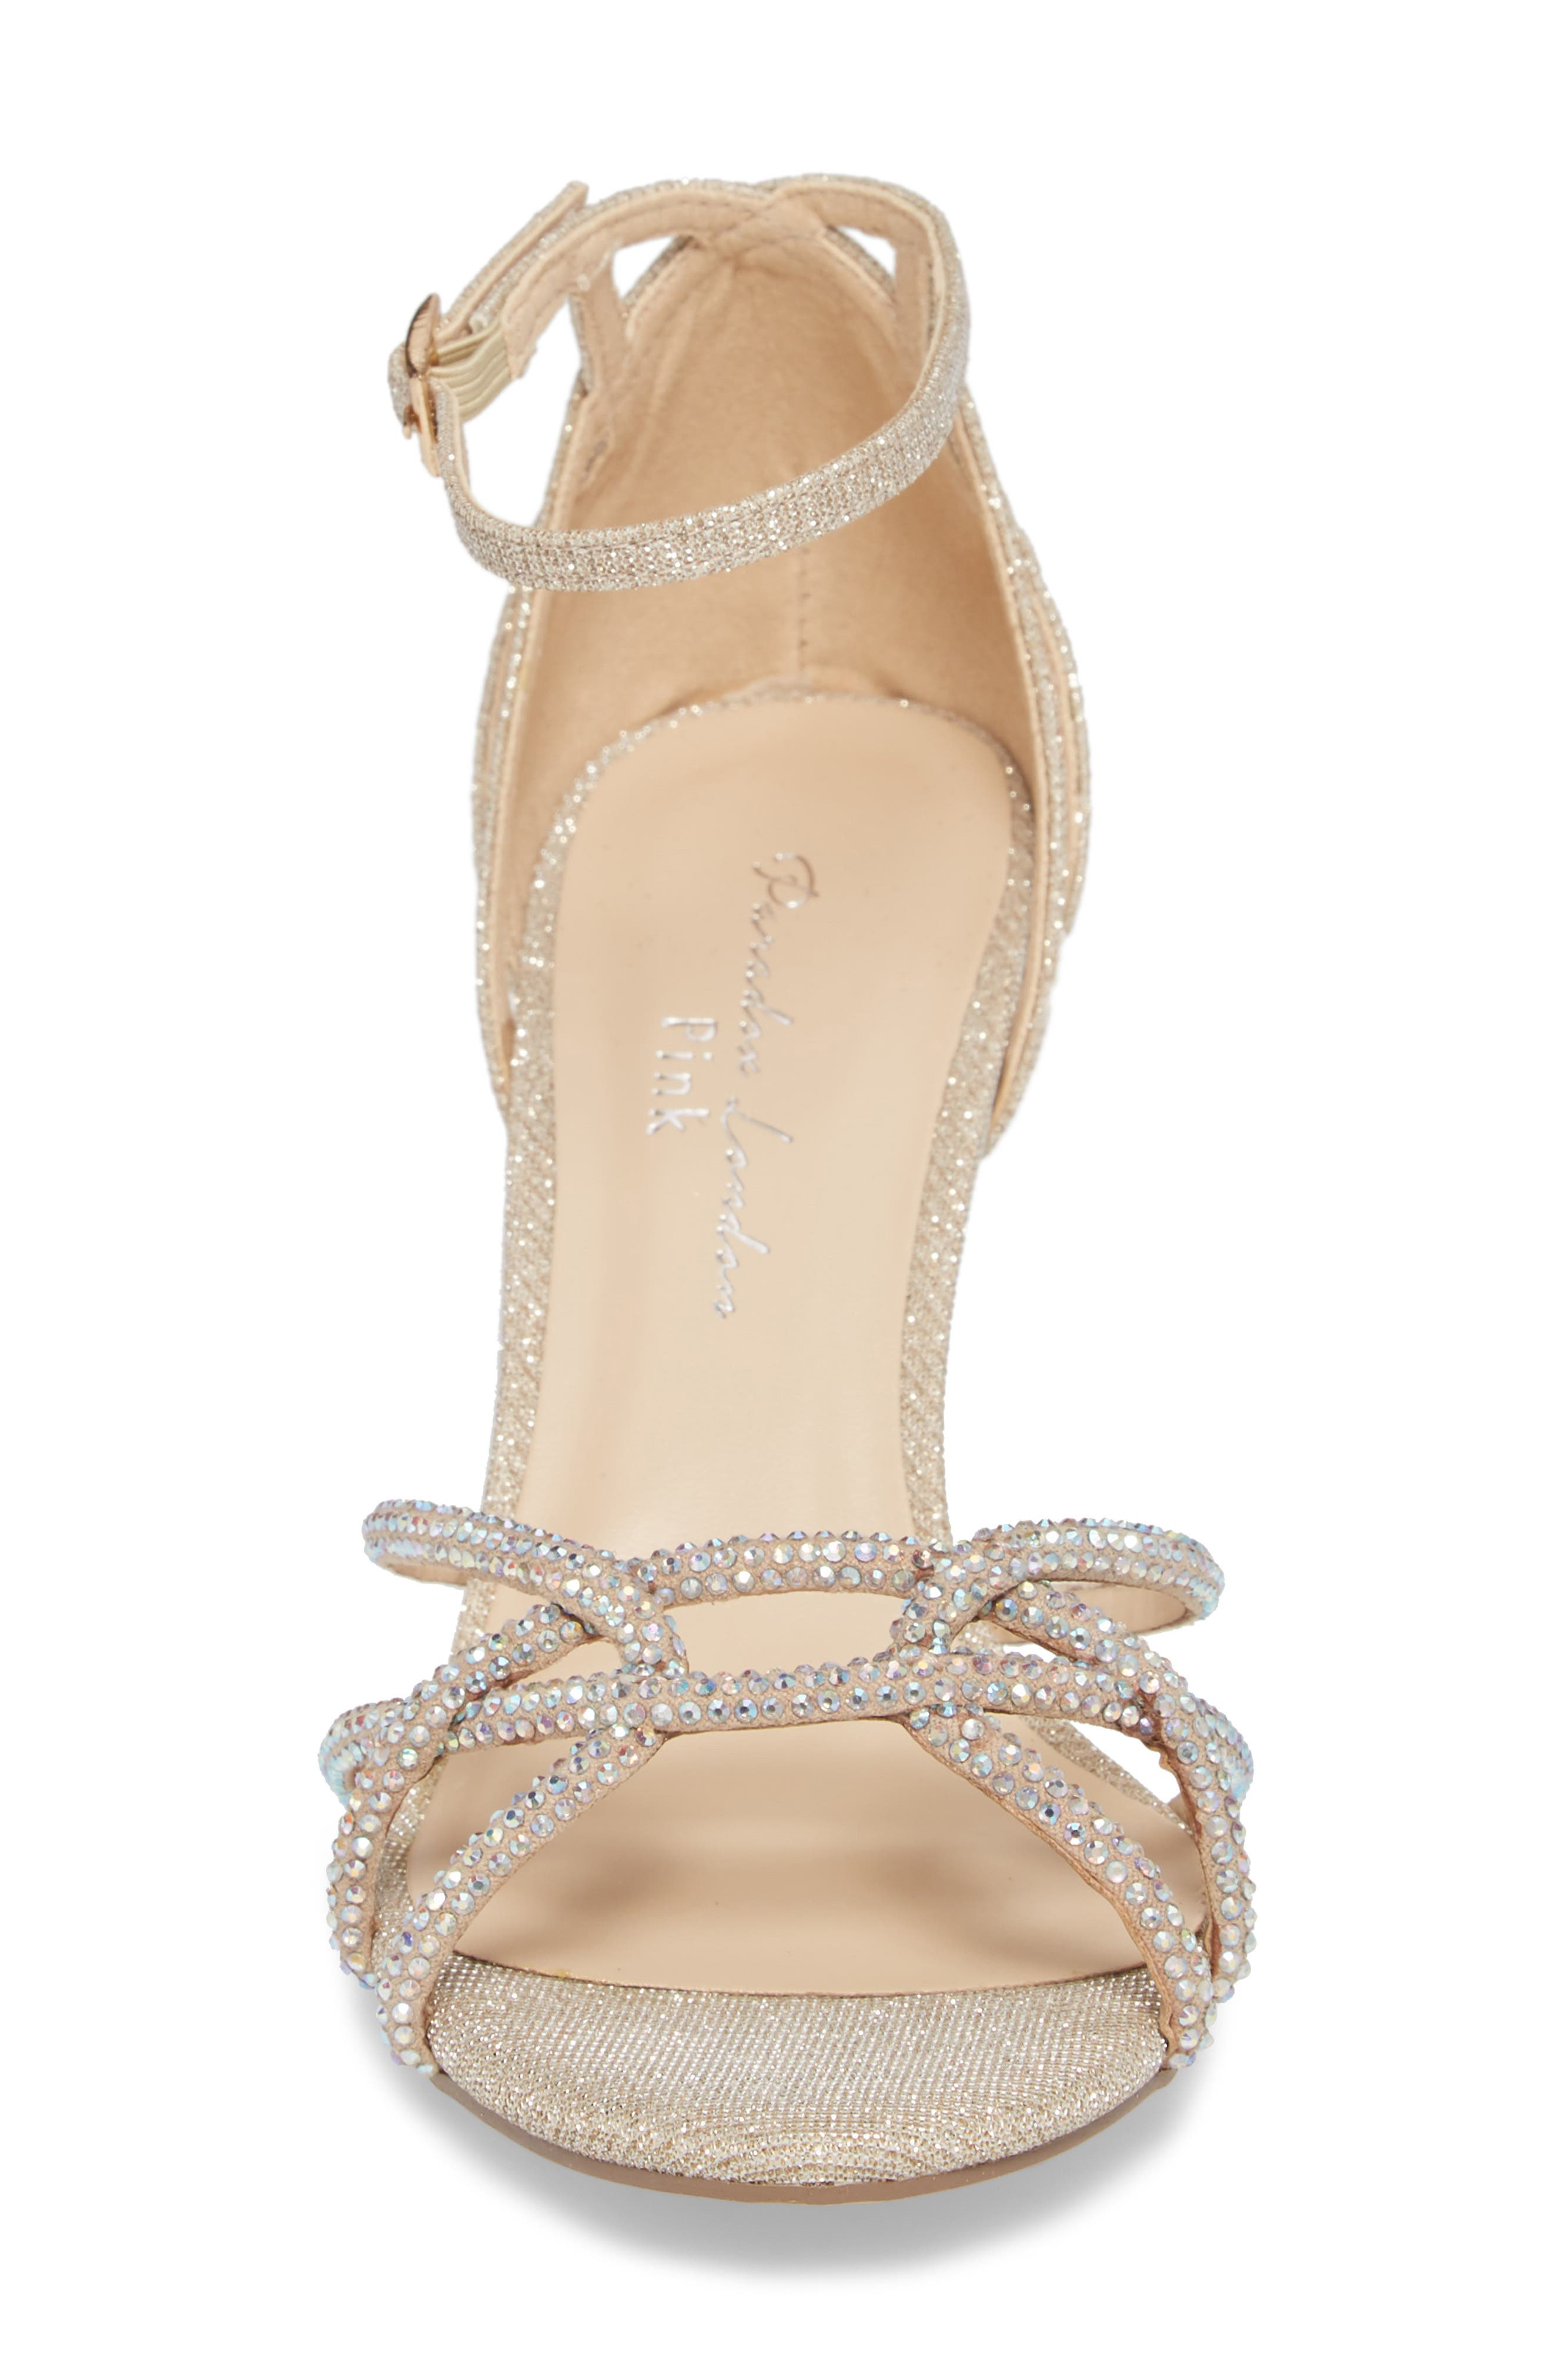 Majesty Sandal,                             Alternate thumbnail 4, color,                             Champagne Fabric